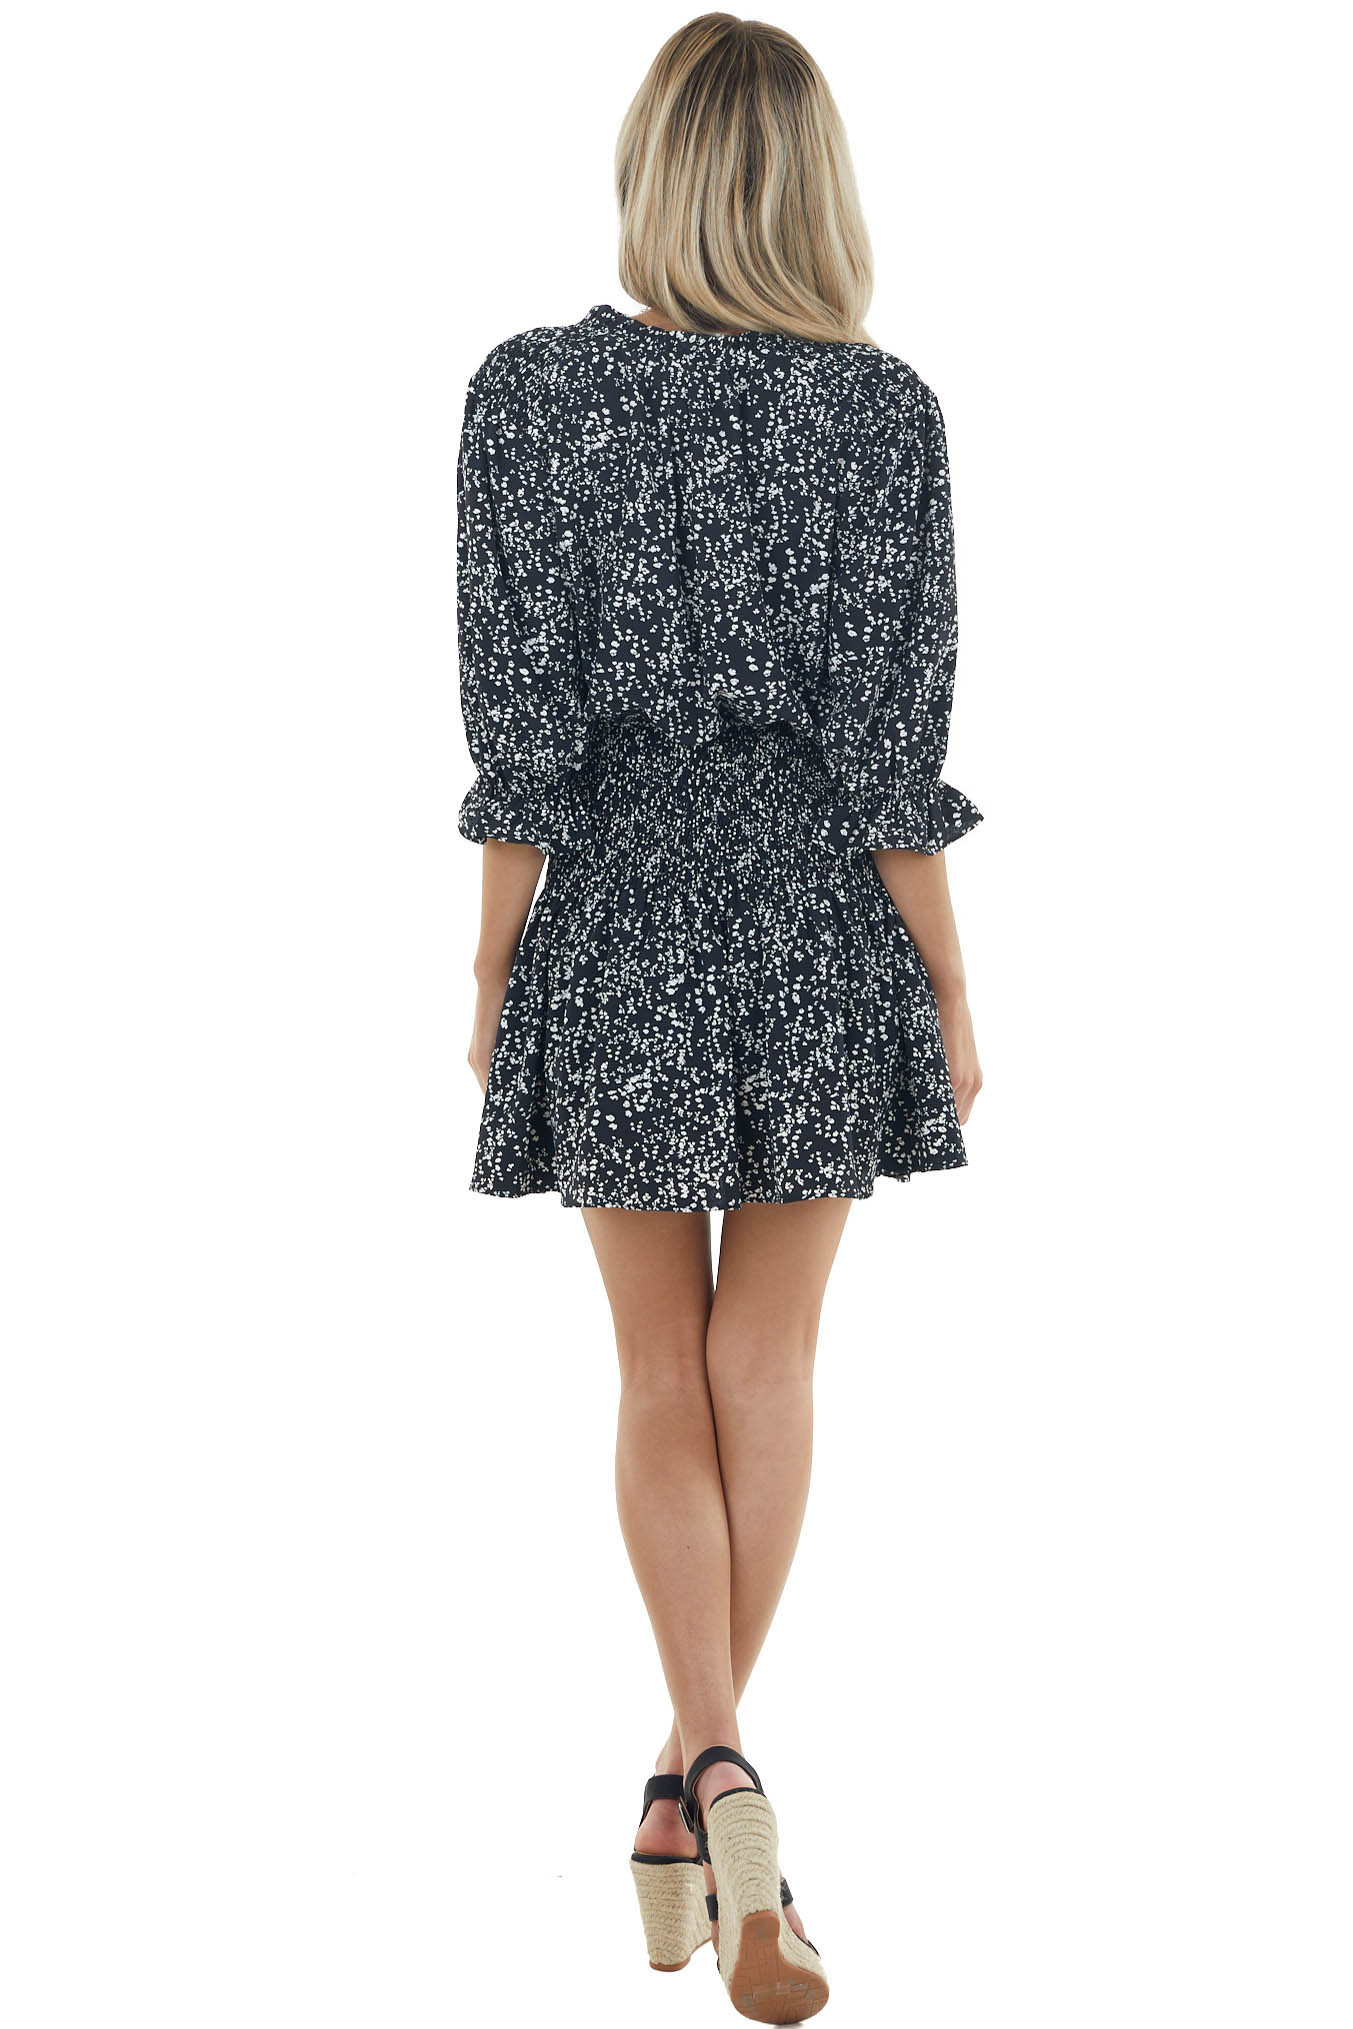 Black Ditsy Floral Short Blouson Dress with Smocked Detail